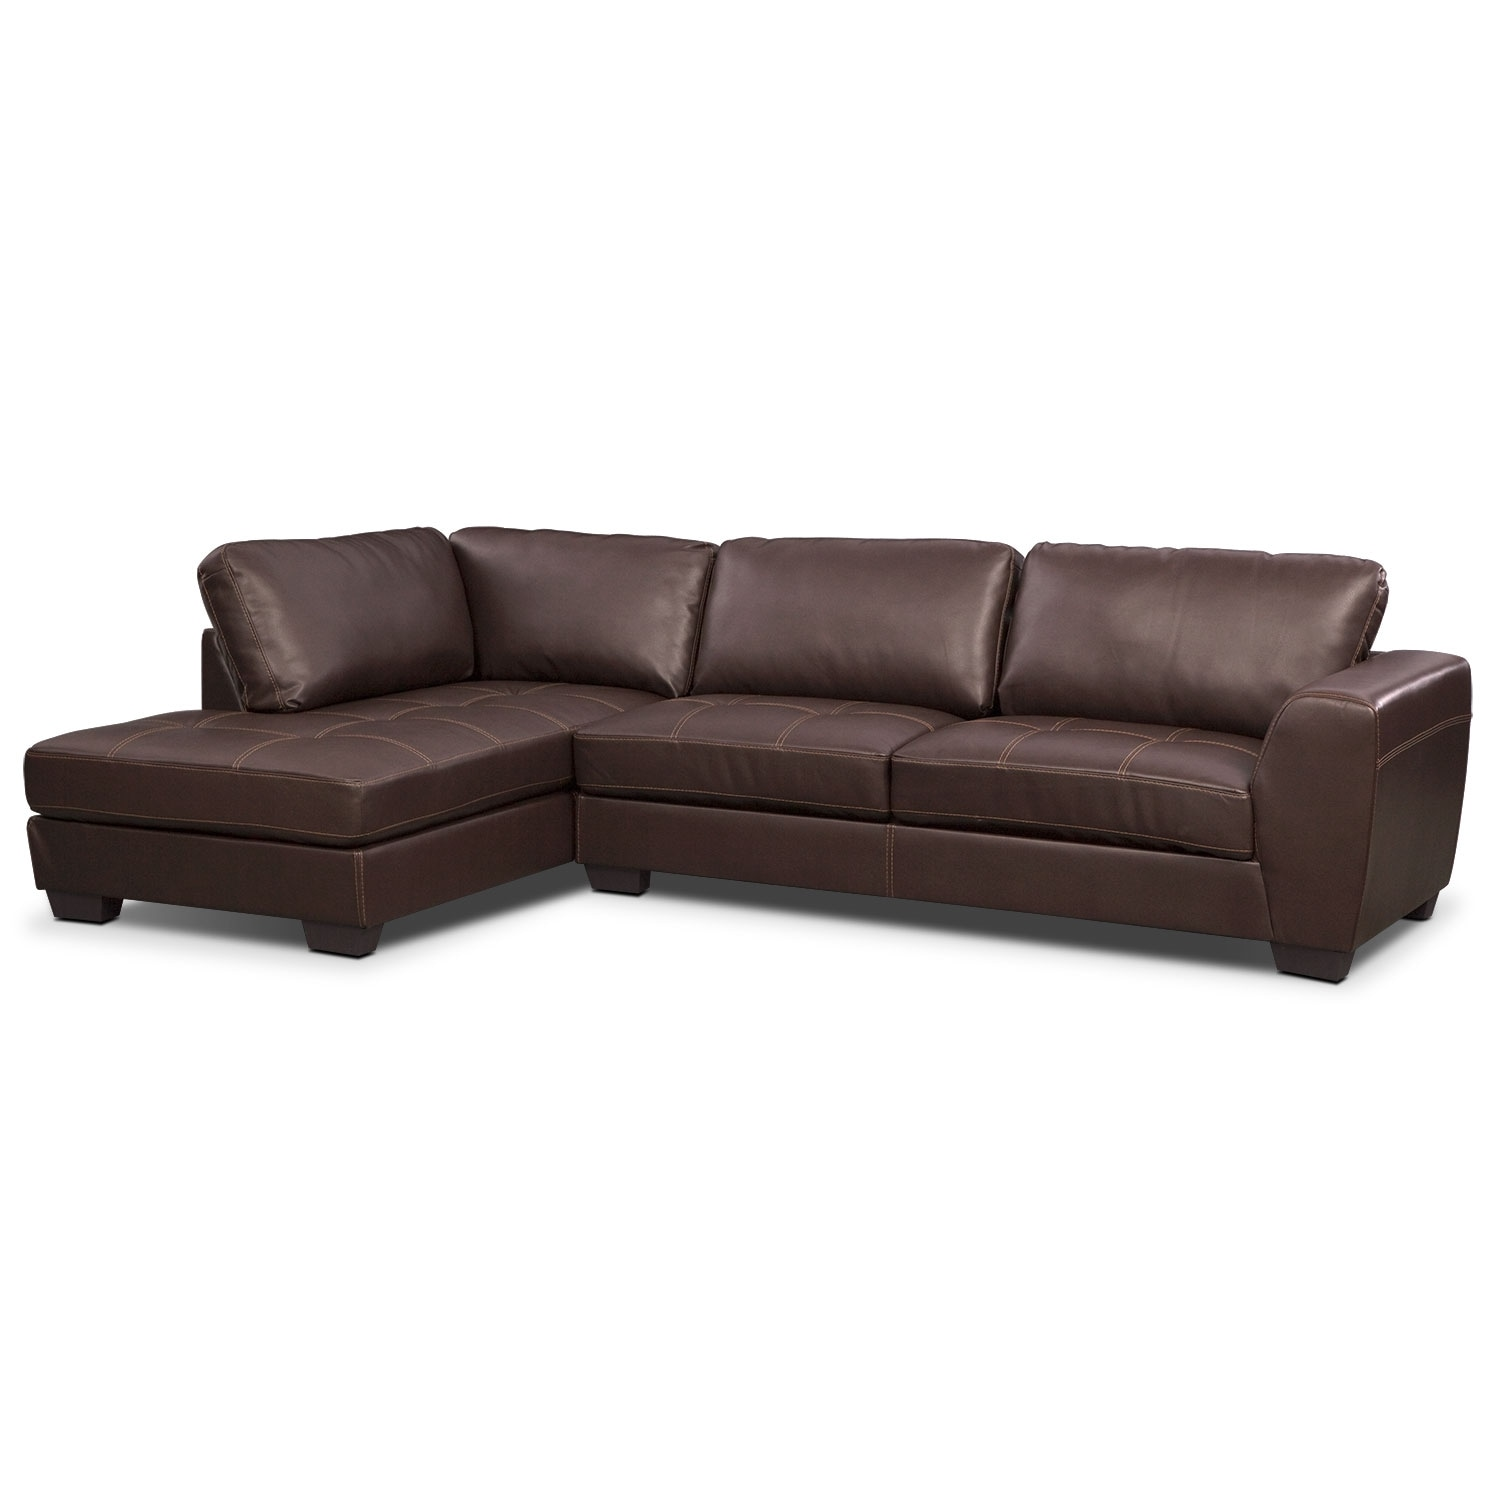 Ciera 2 Pc. Sectional